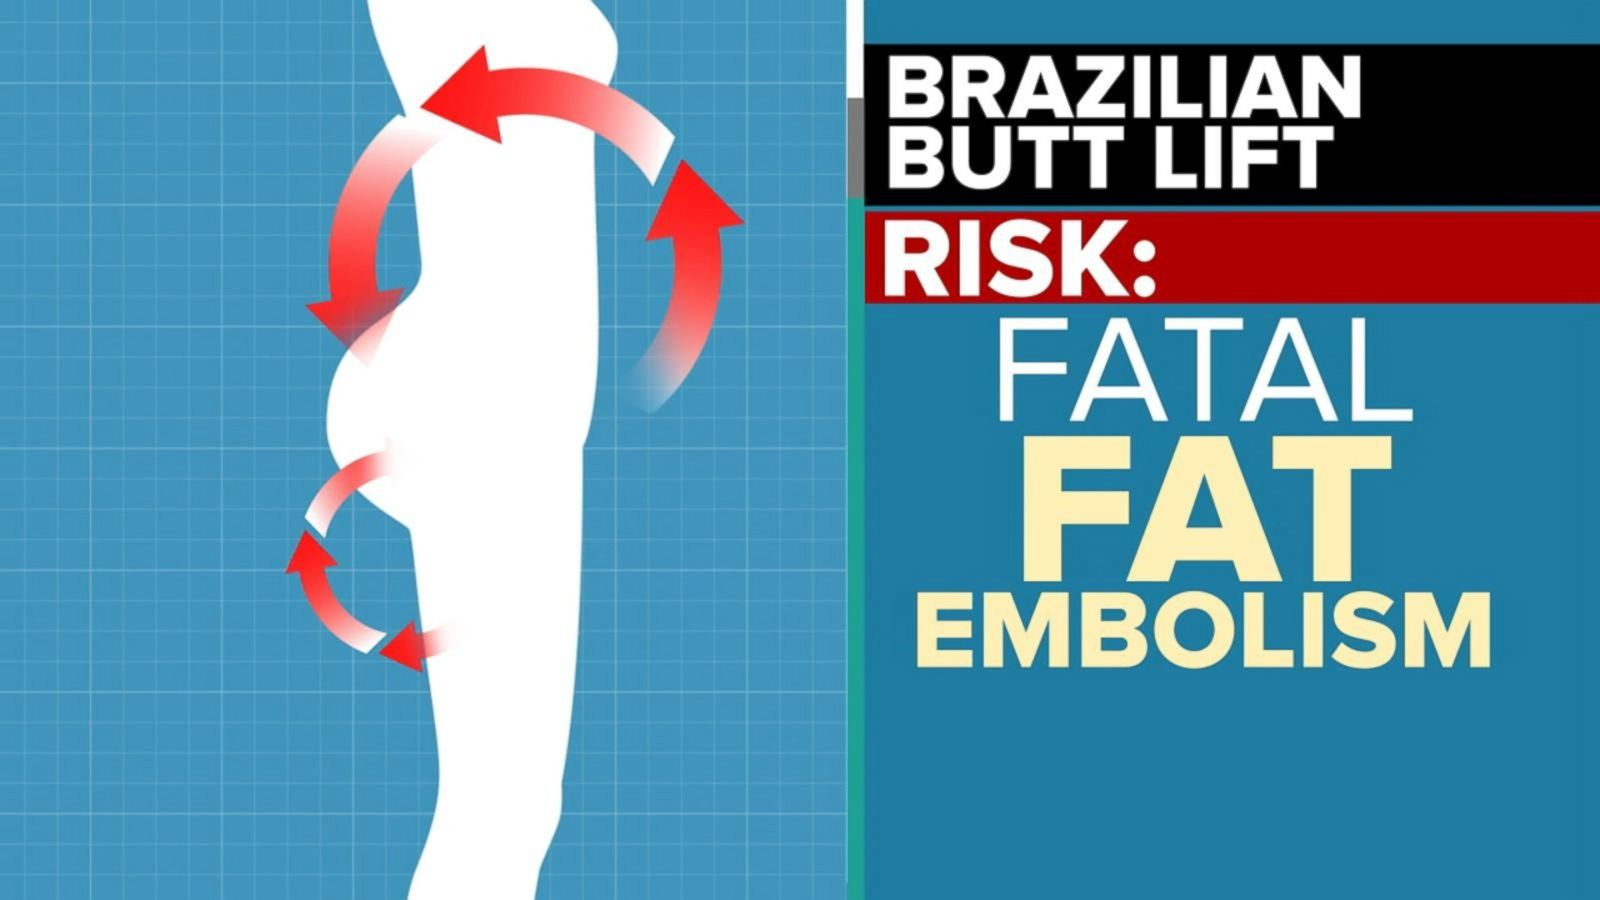 Plastic surgeons' group issues new warning over Brazilian butt lift